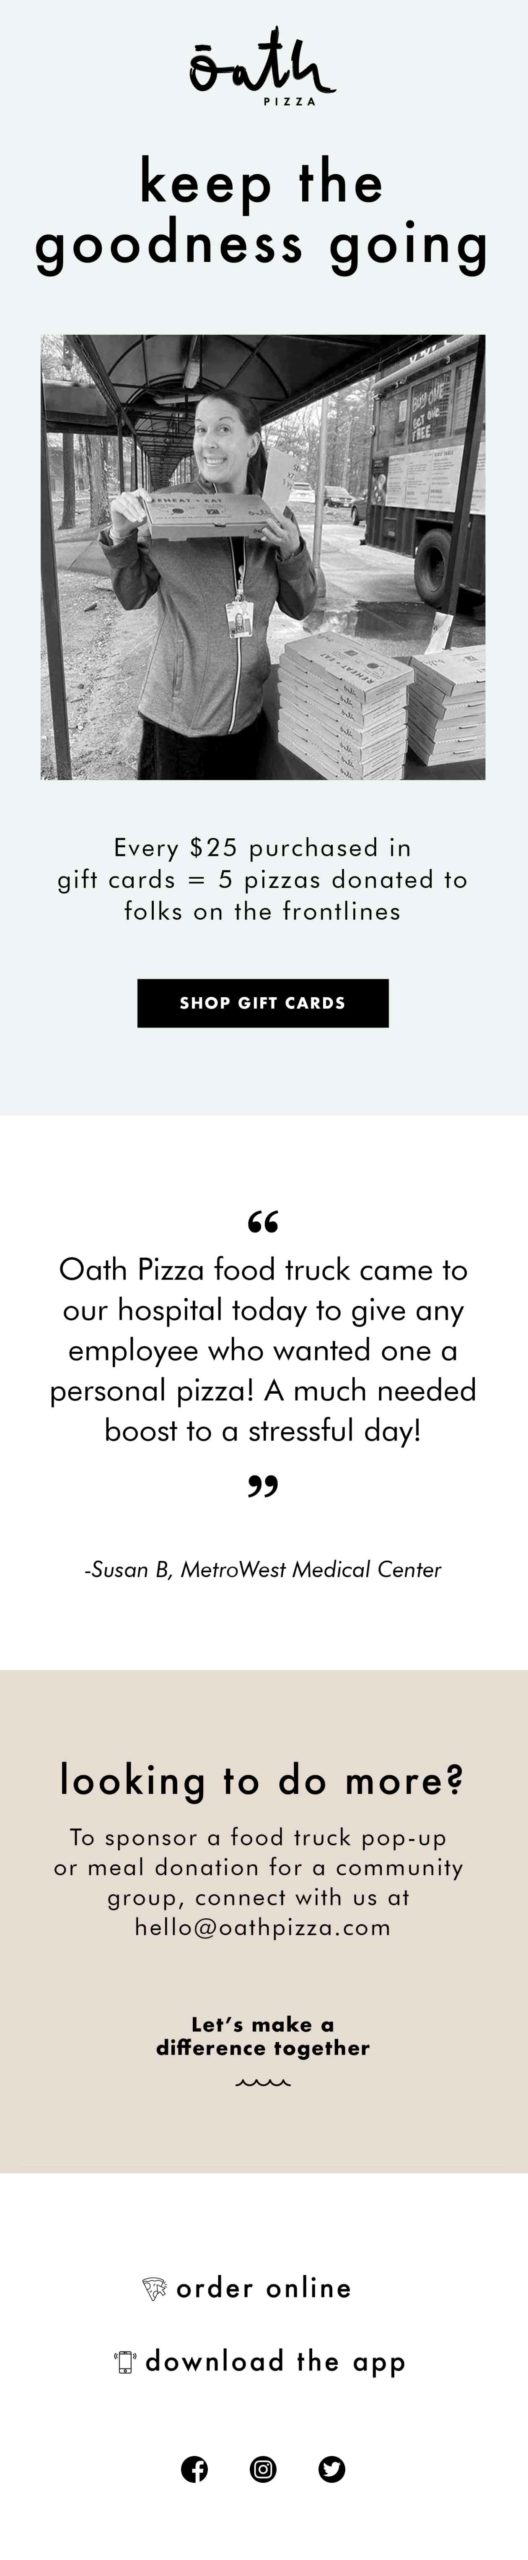 Oath Pizza: Fuel the Frontlines email